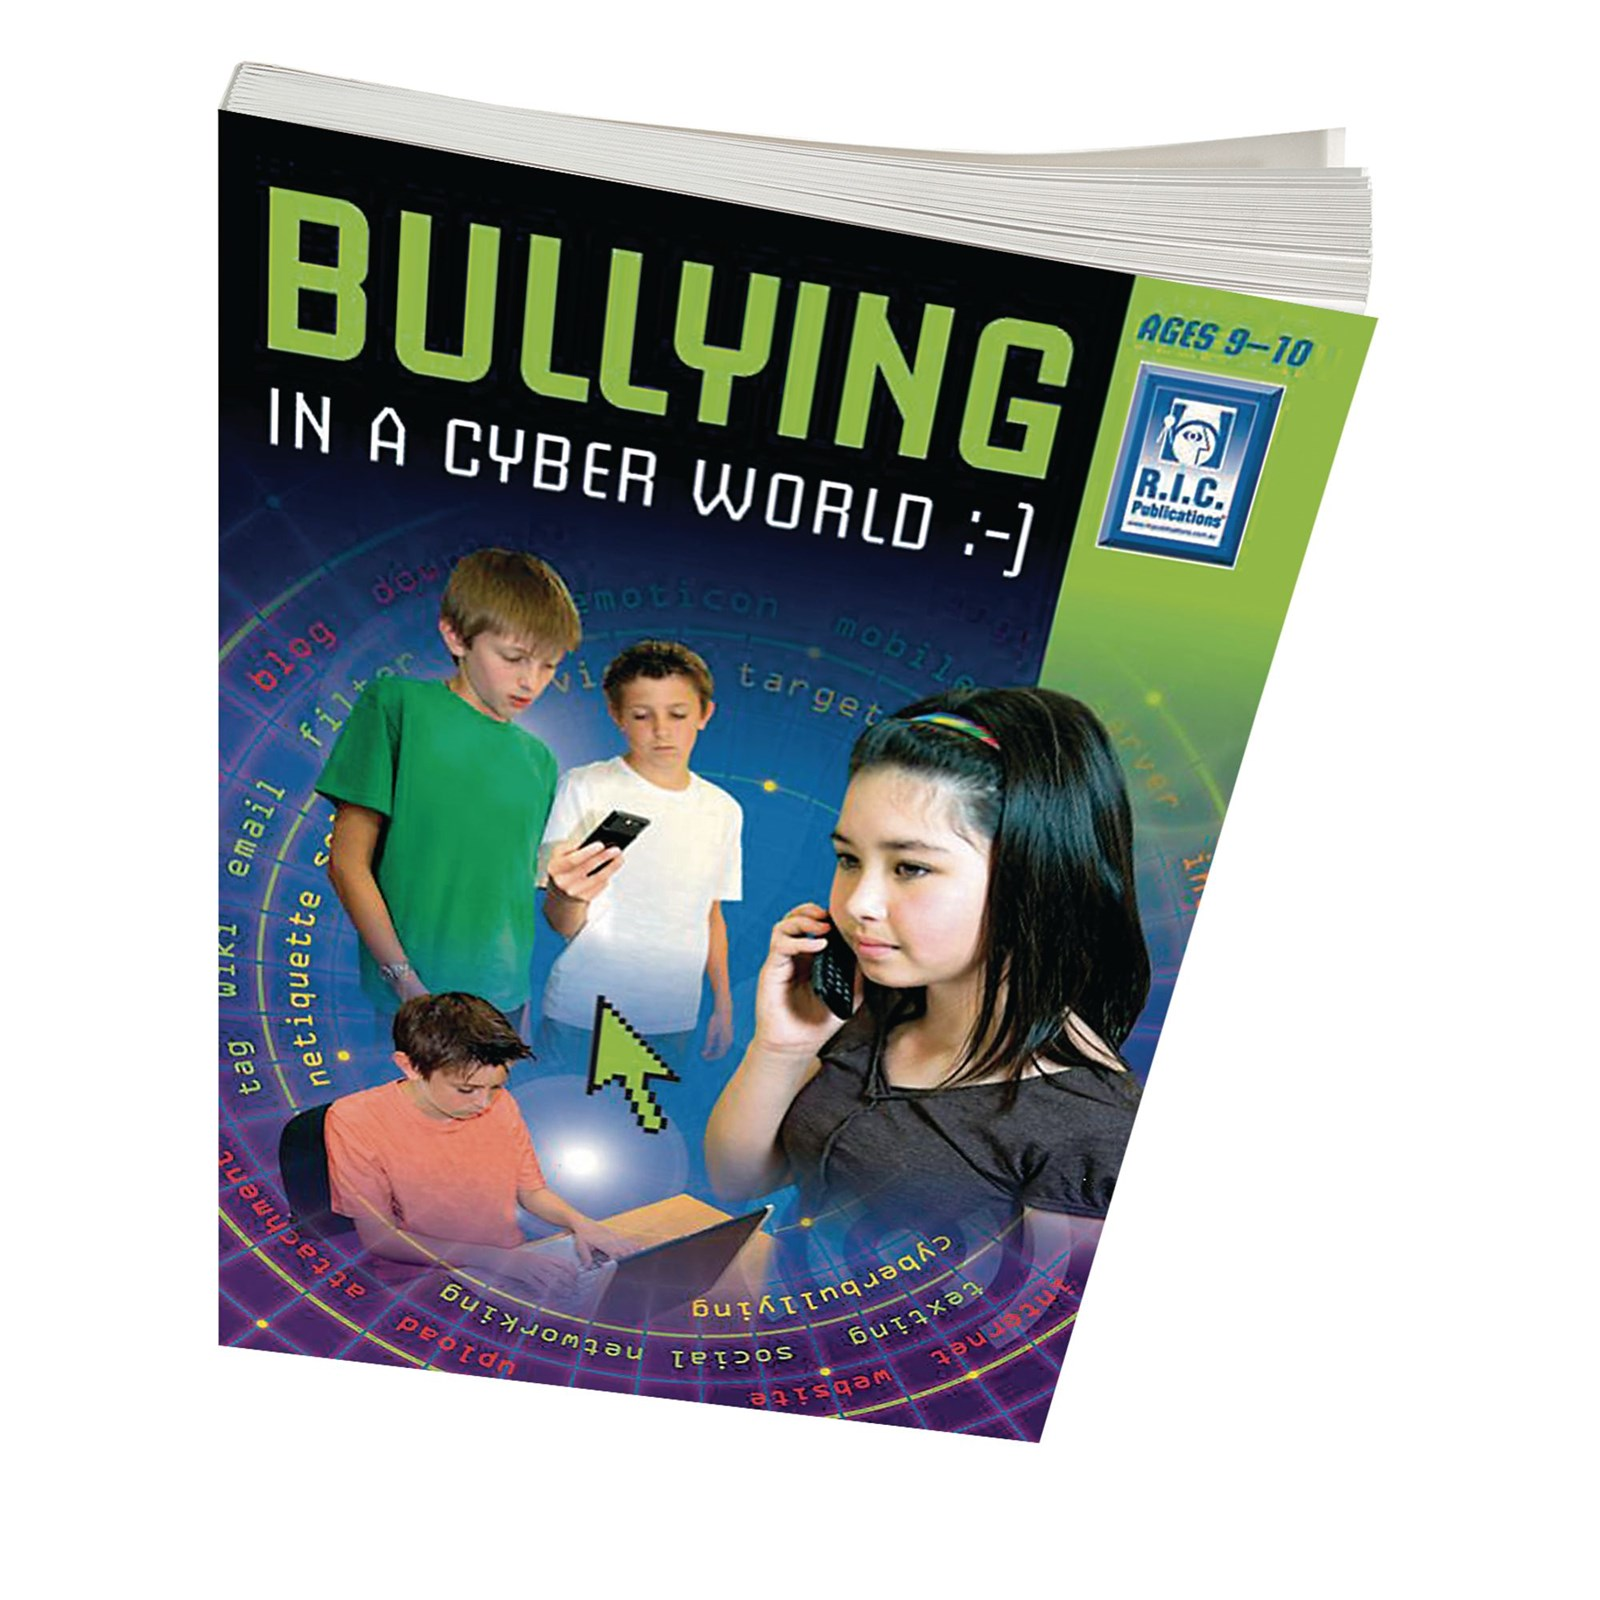 Bullying In a Cyber World - Middle